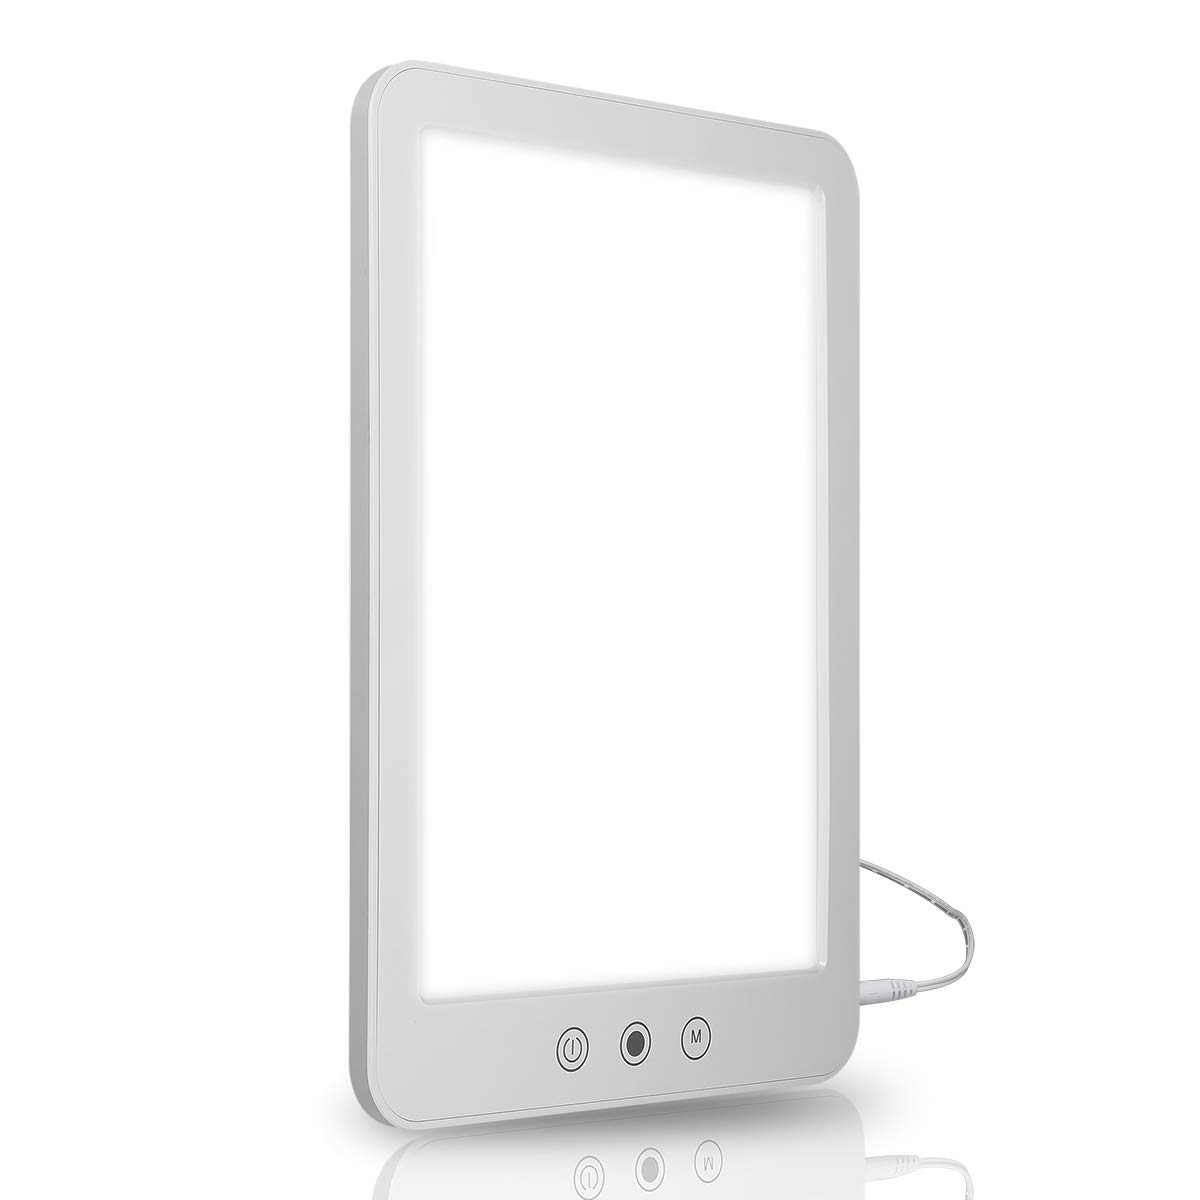 LcueGuk 10,000 Lux Bright Light Therapy Lamp with 3 Adjustable Color and Brightness Controls, Natural Sunlight Simulation, 100% UV-Free by LcueGuk